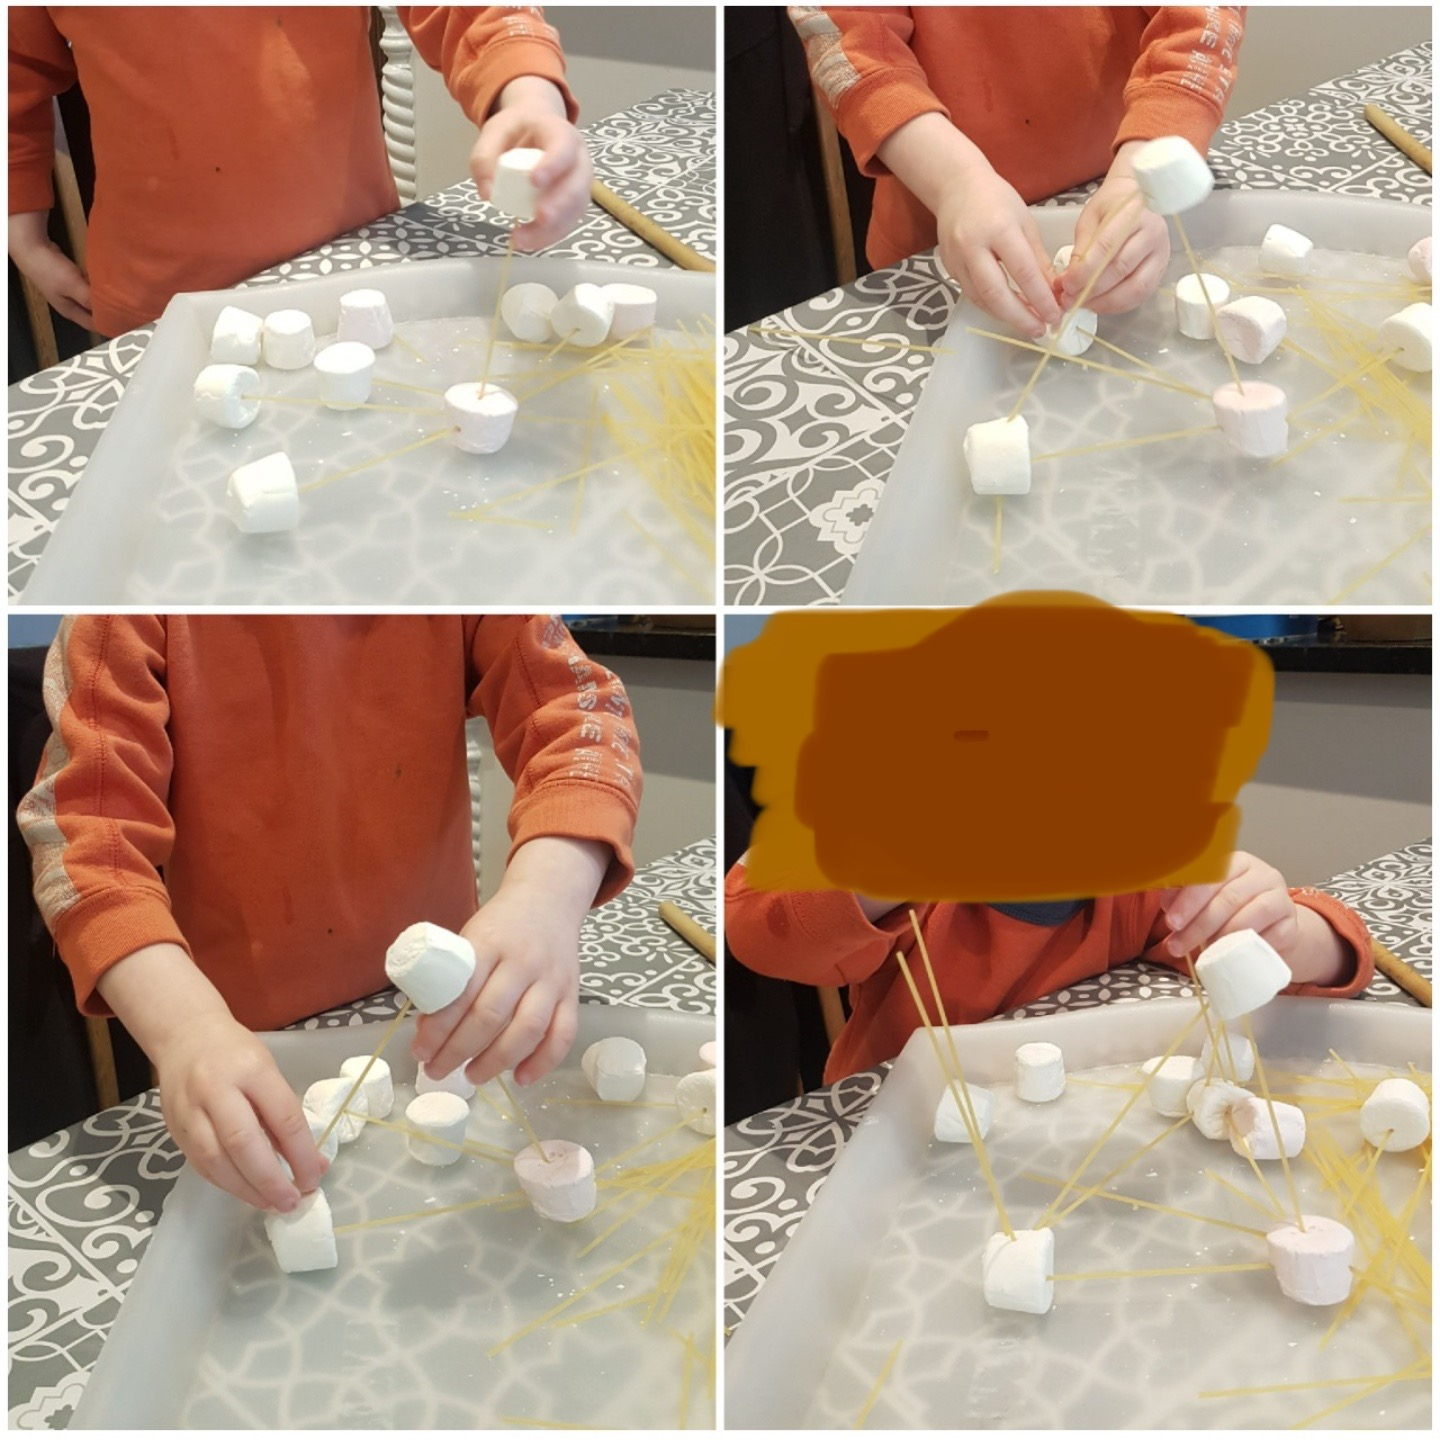 Henry's amazing Science investigation!